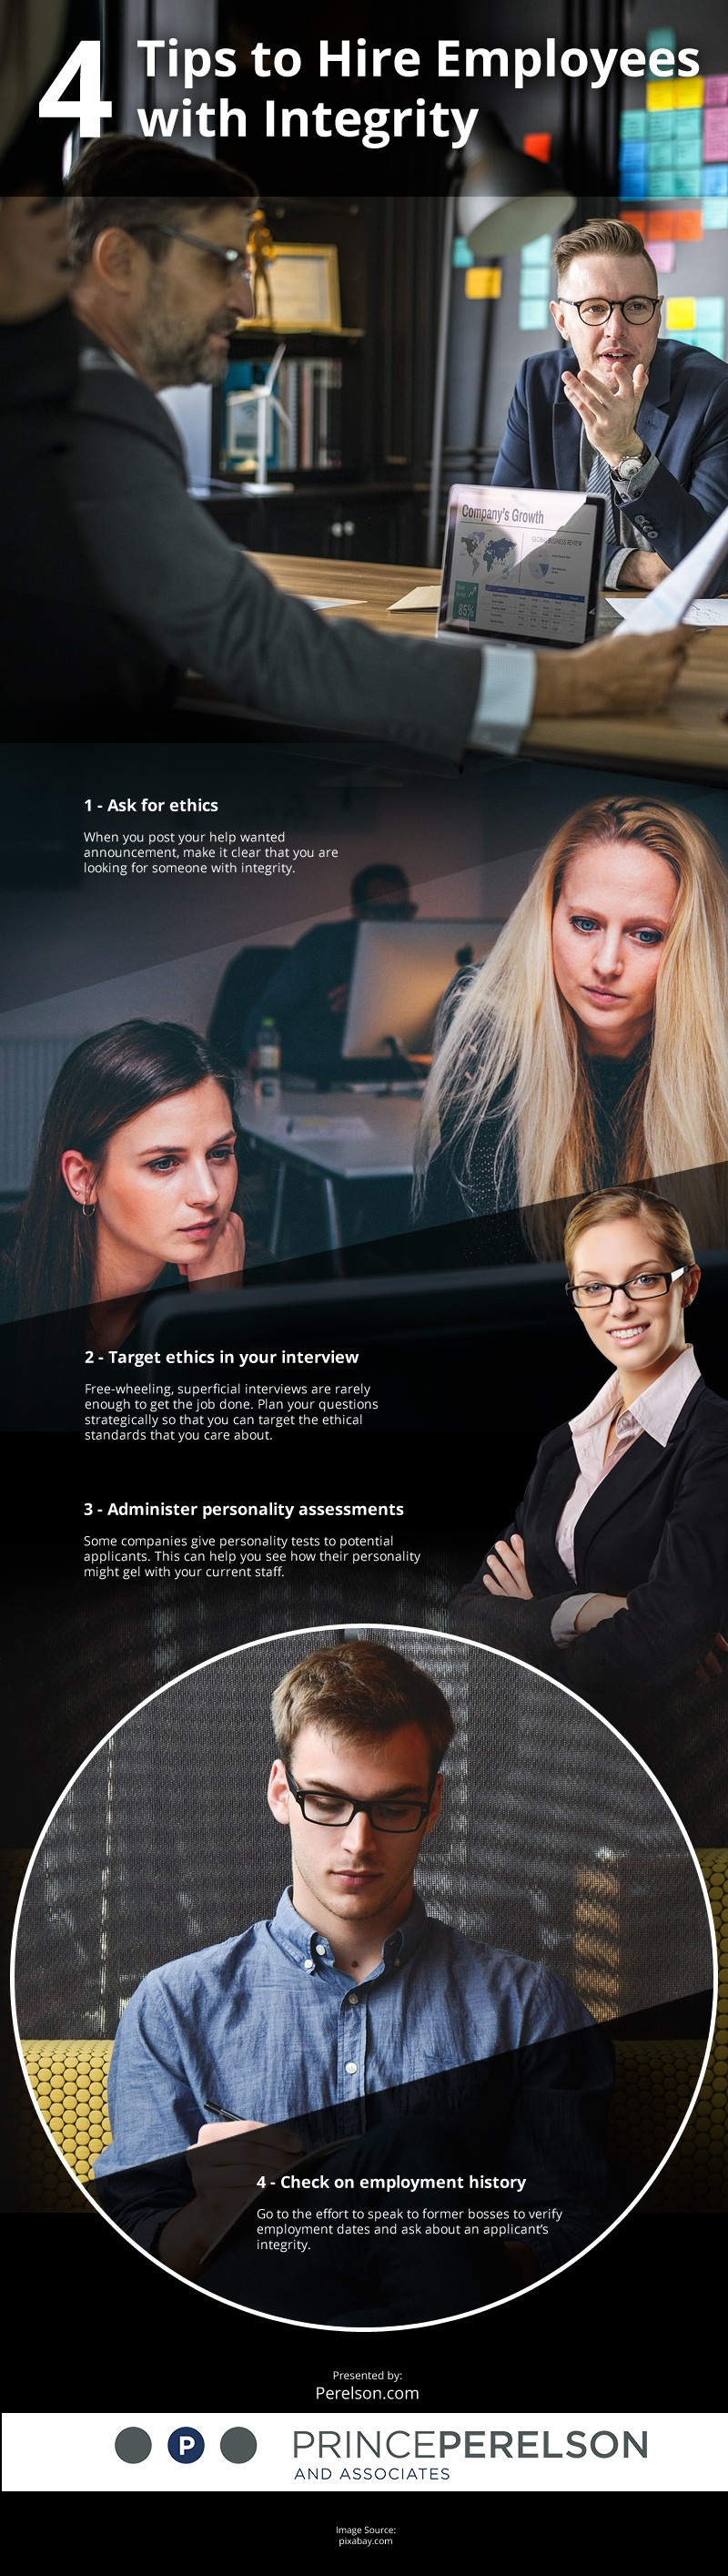 4 Tips to Hire Employees with Integrity [infographic]